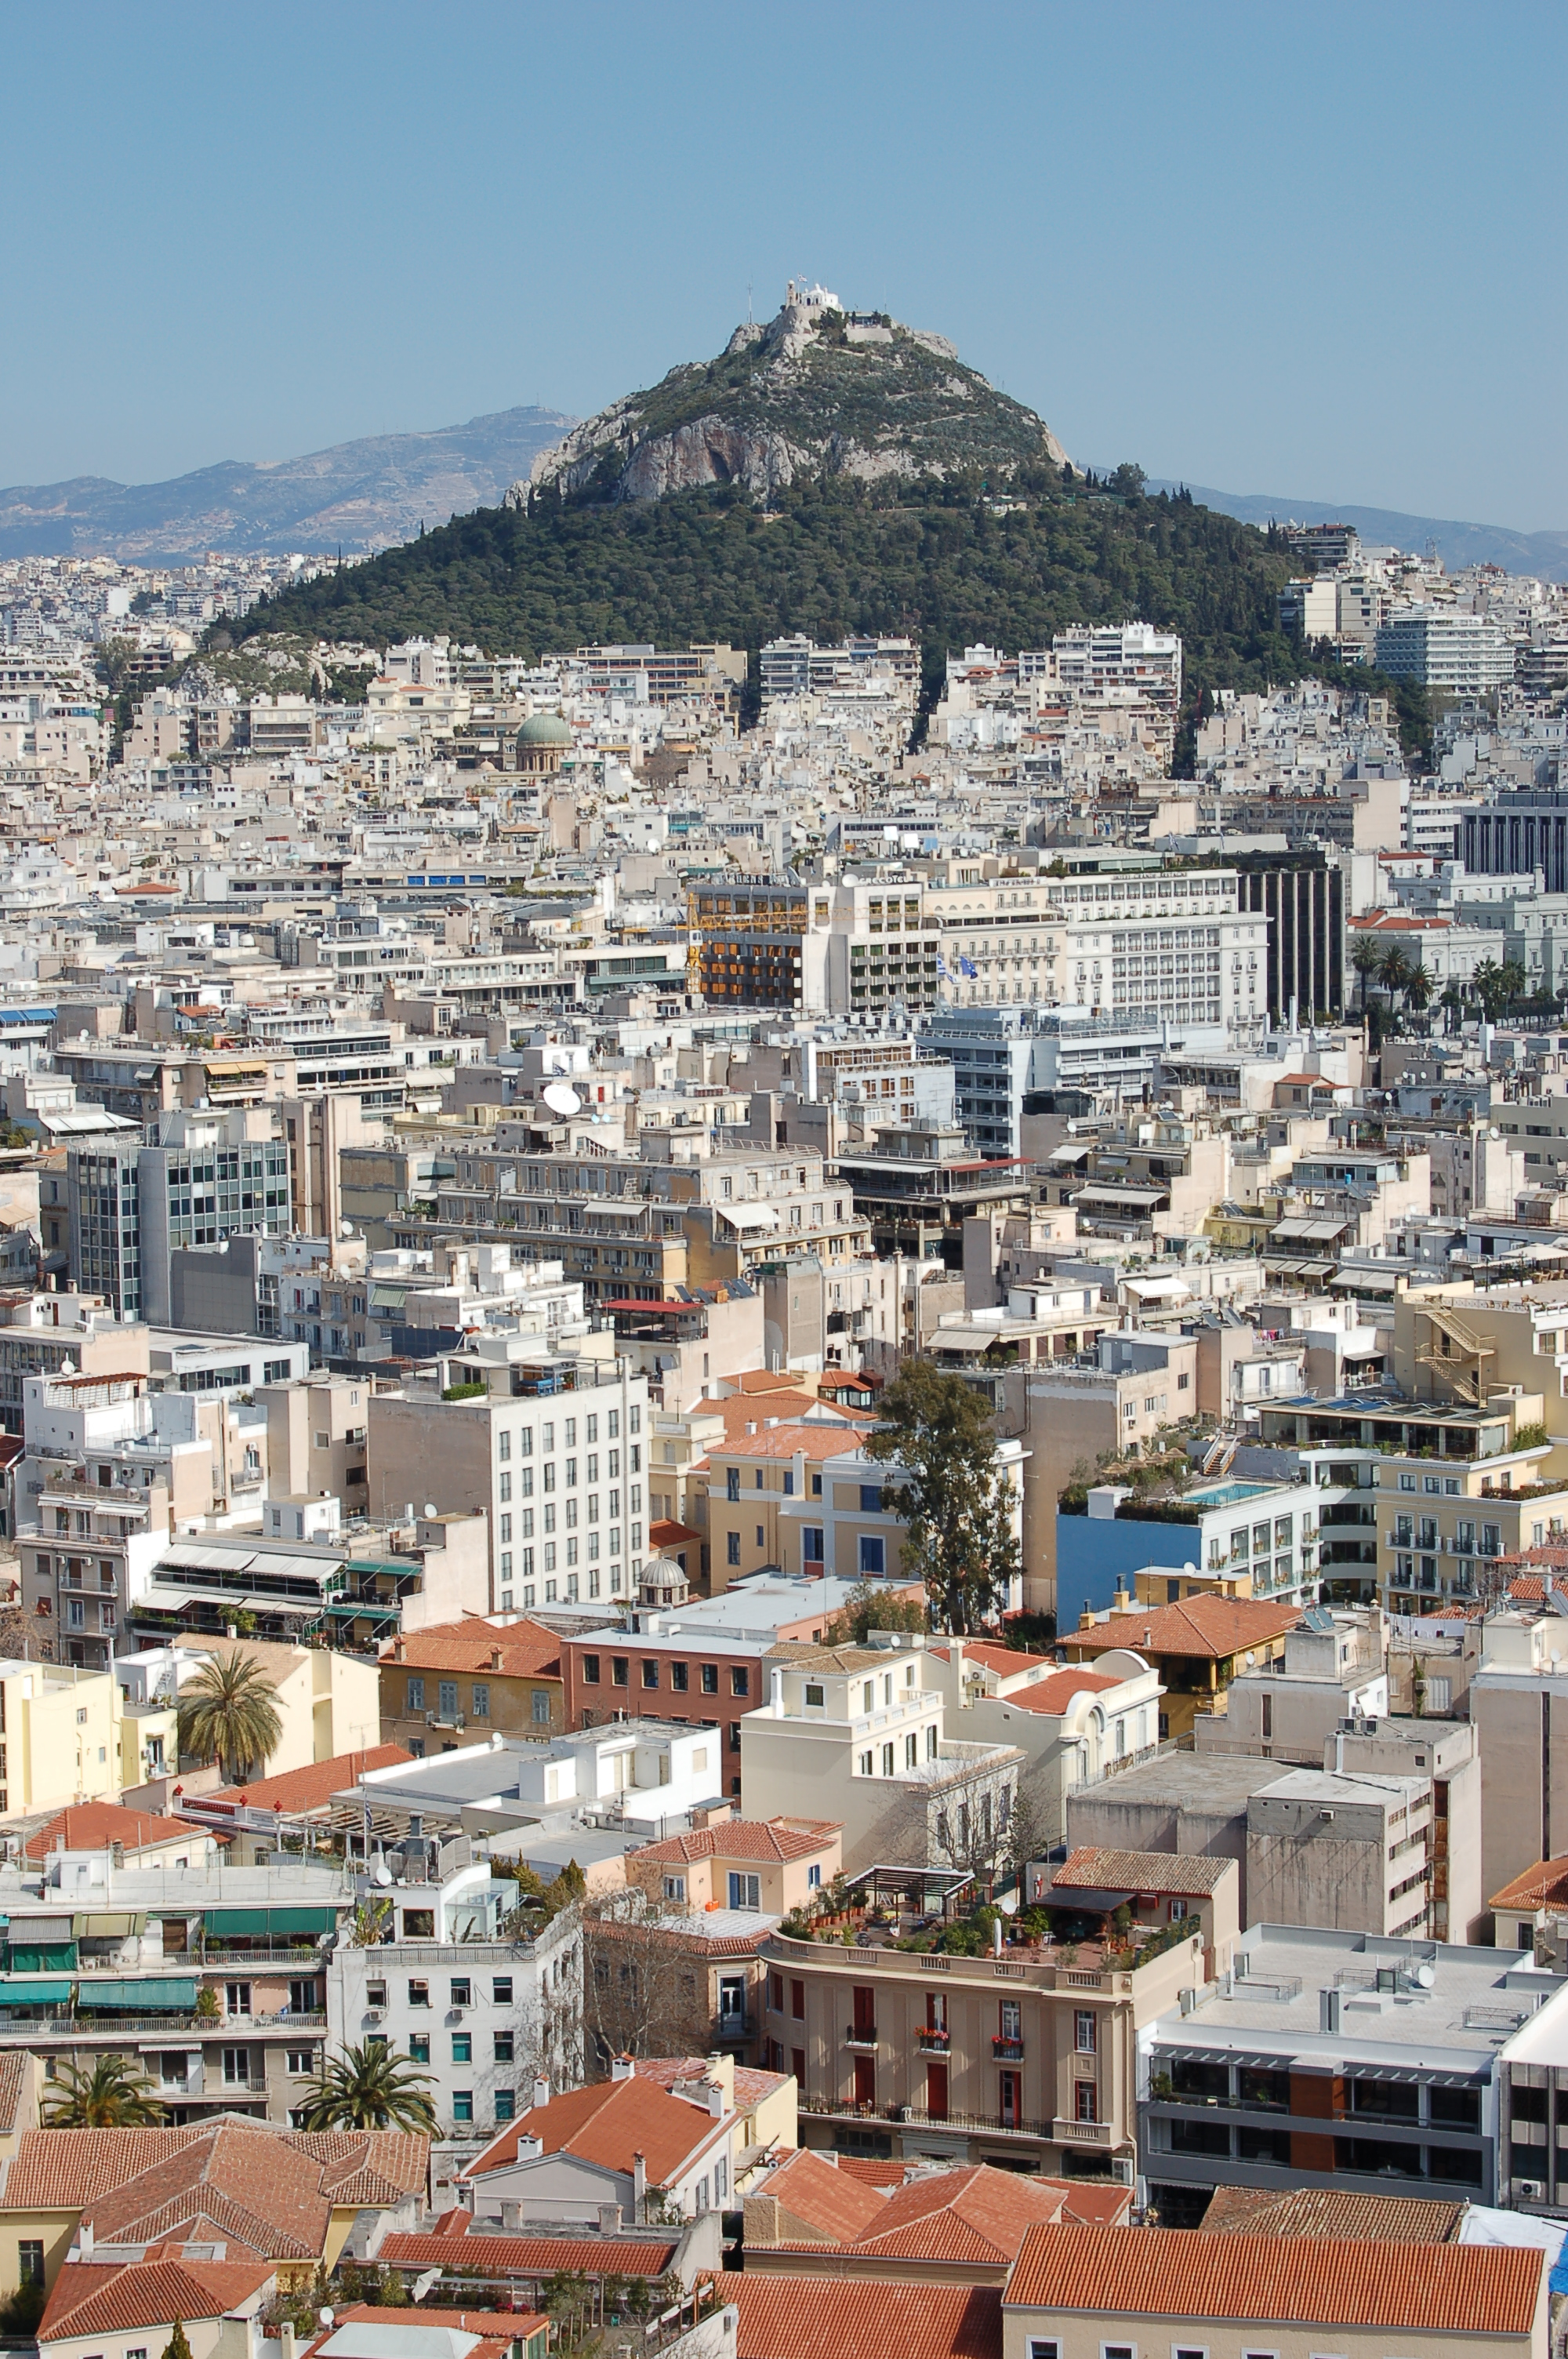 File:Mount Lycabettus.jpg - Wikipedia